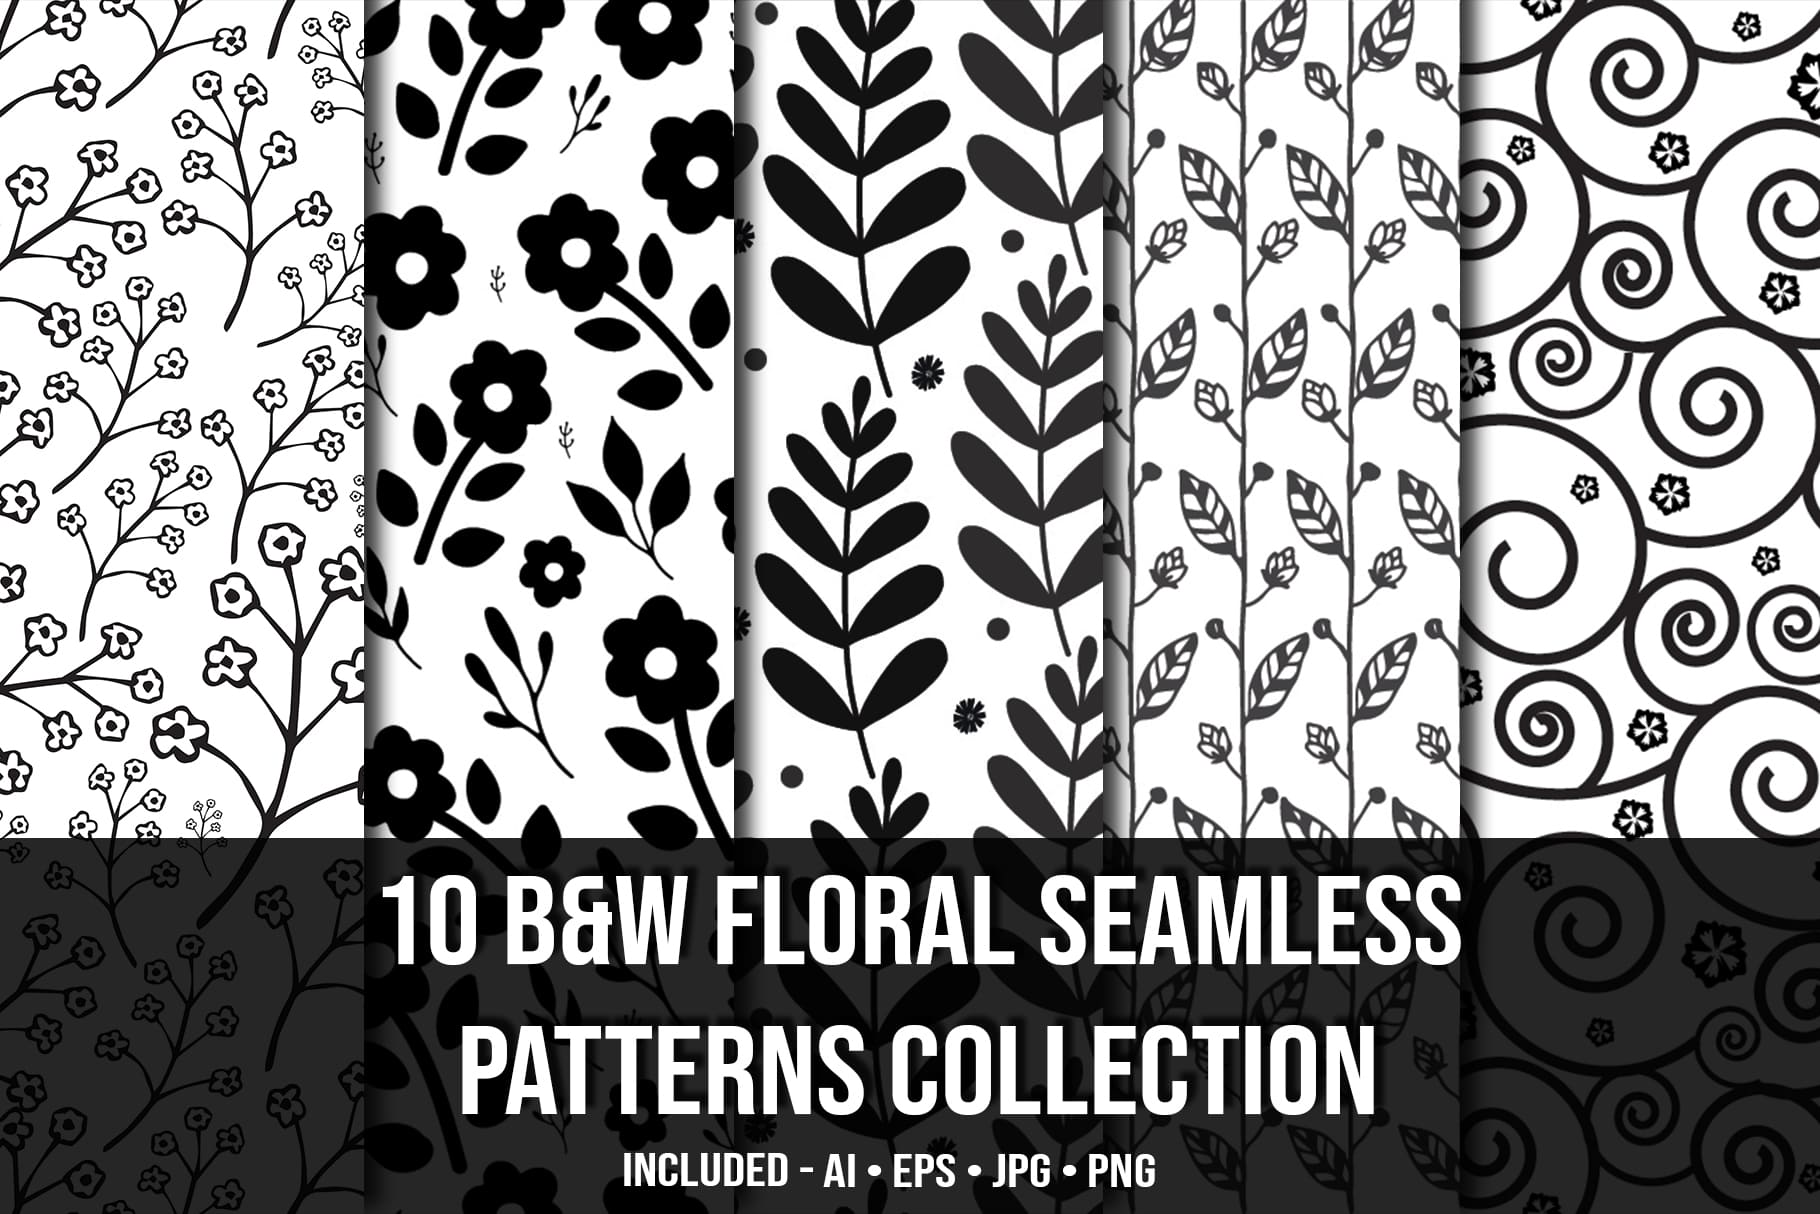 Main image.Black & White Floral Seamless Patterns Collection.